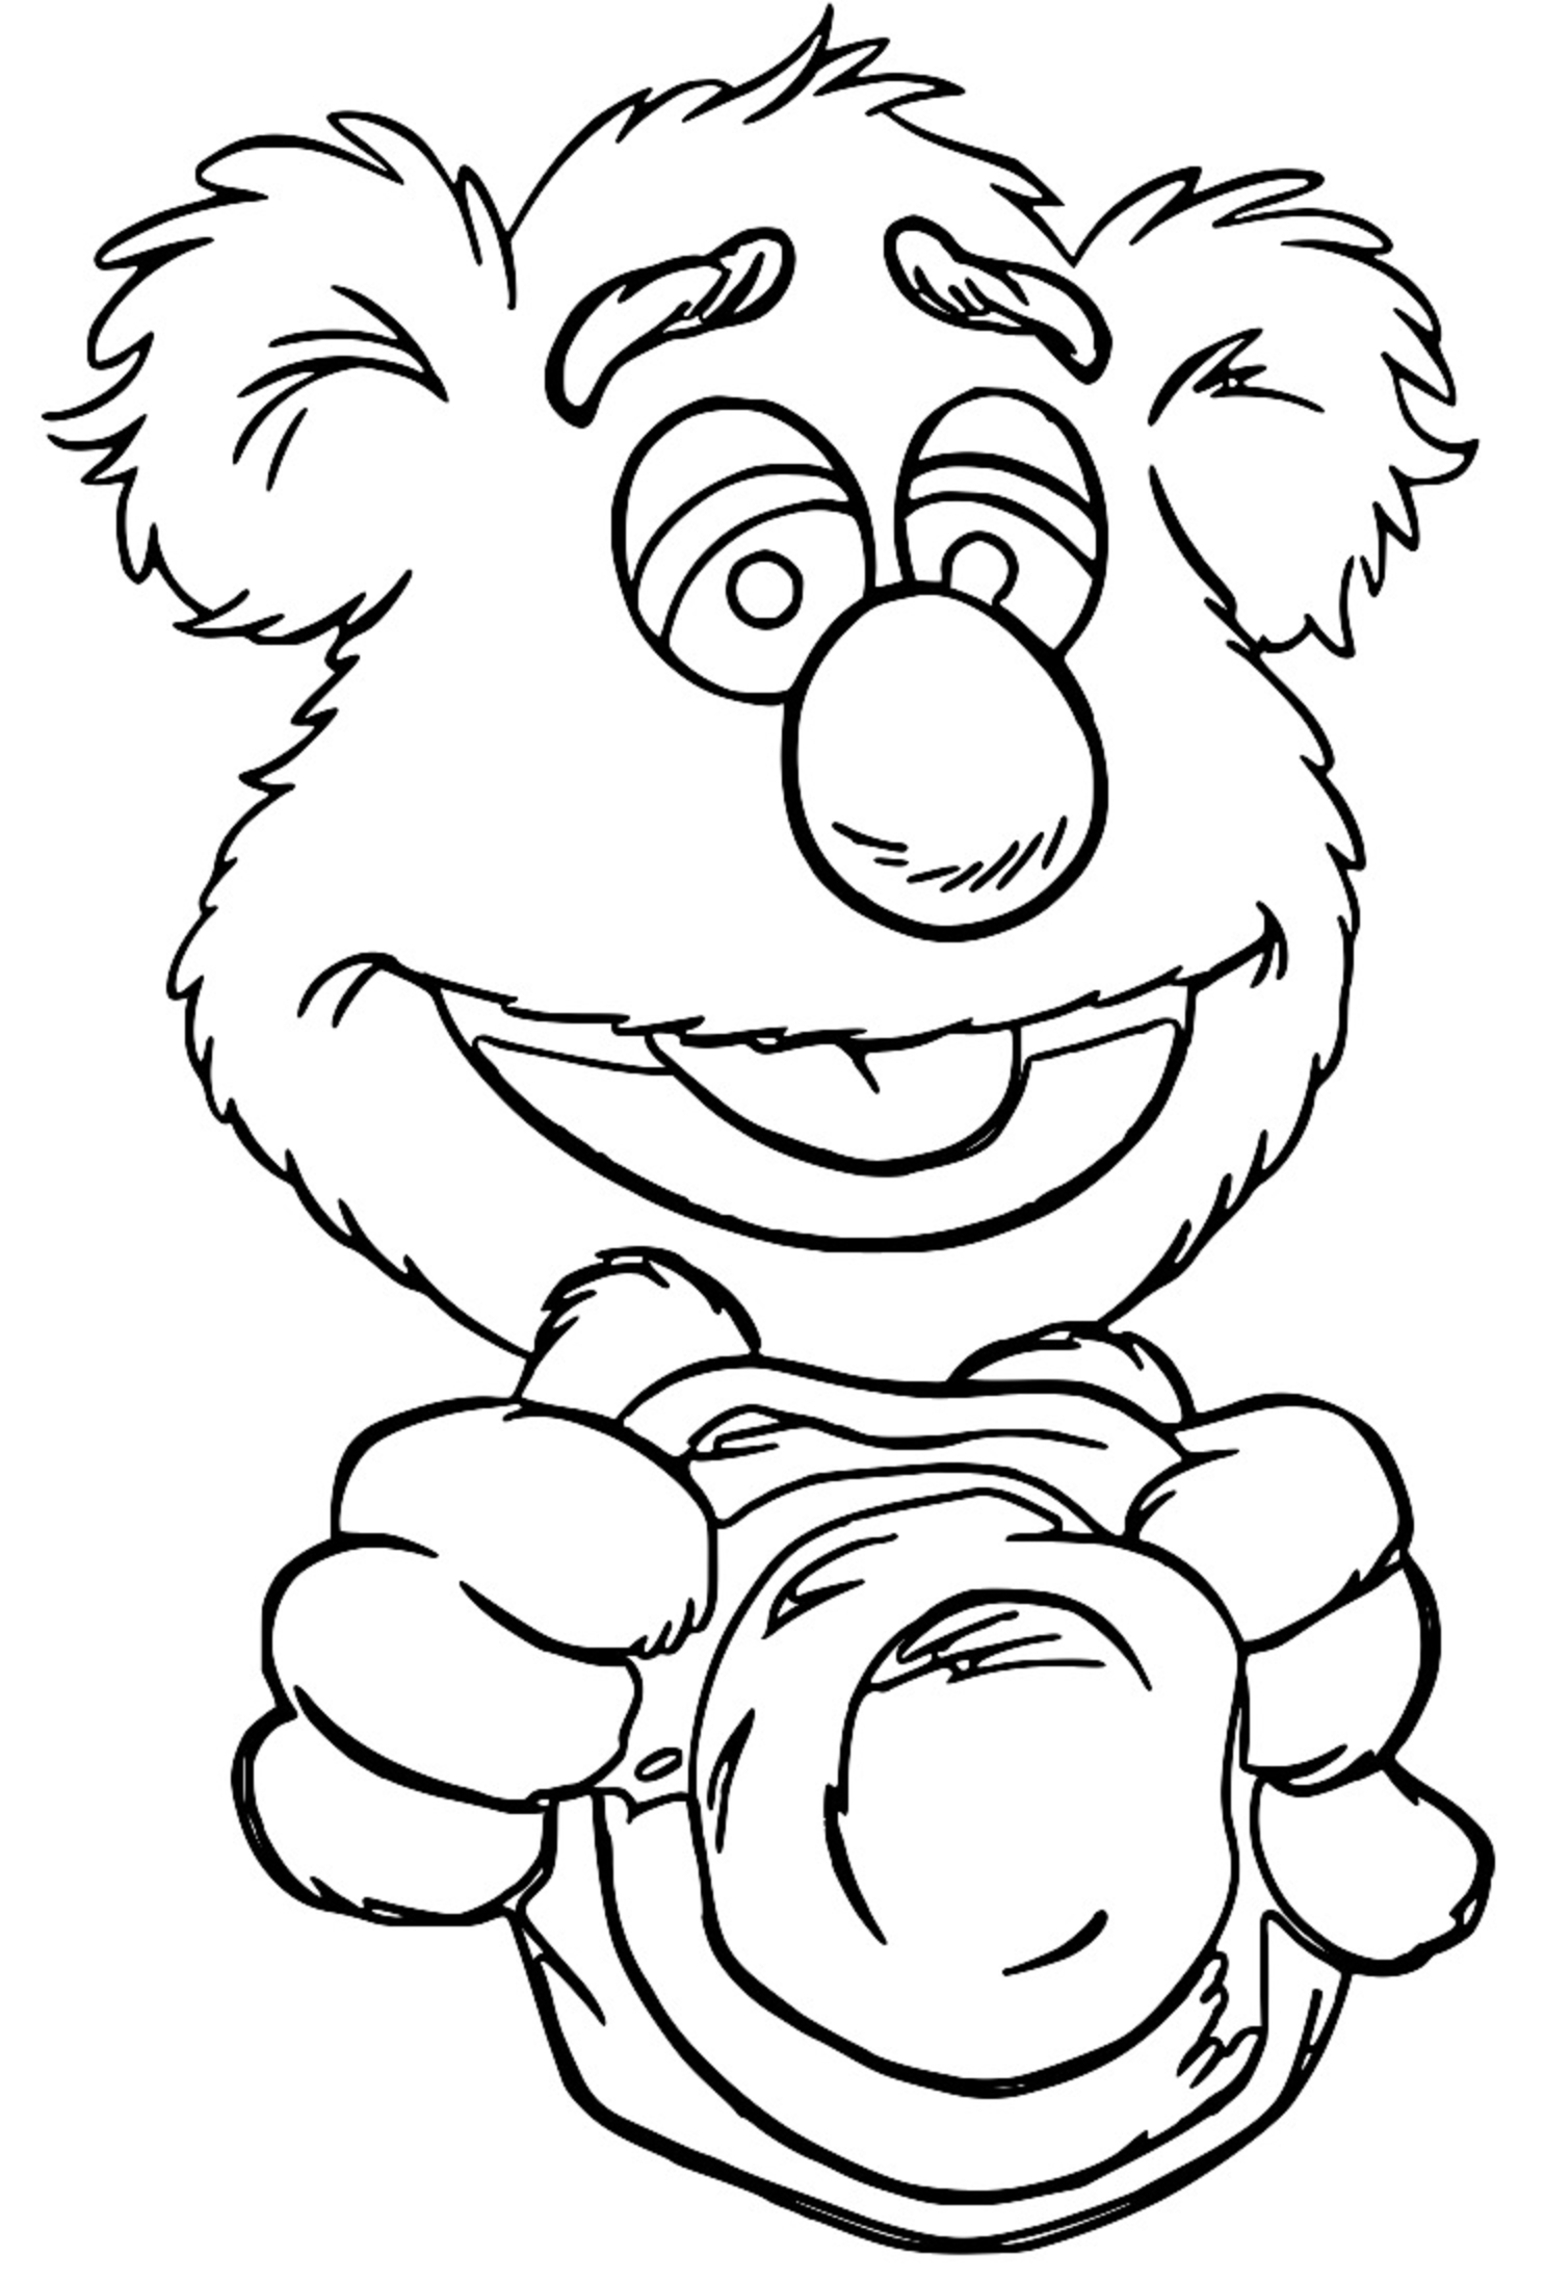 The Muppets fozzie bear 3 Cartoon Coloring Page